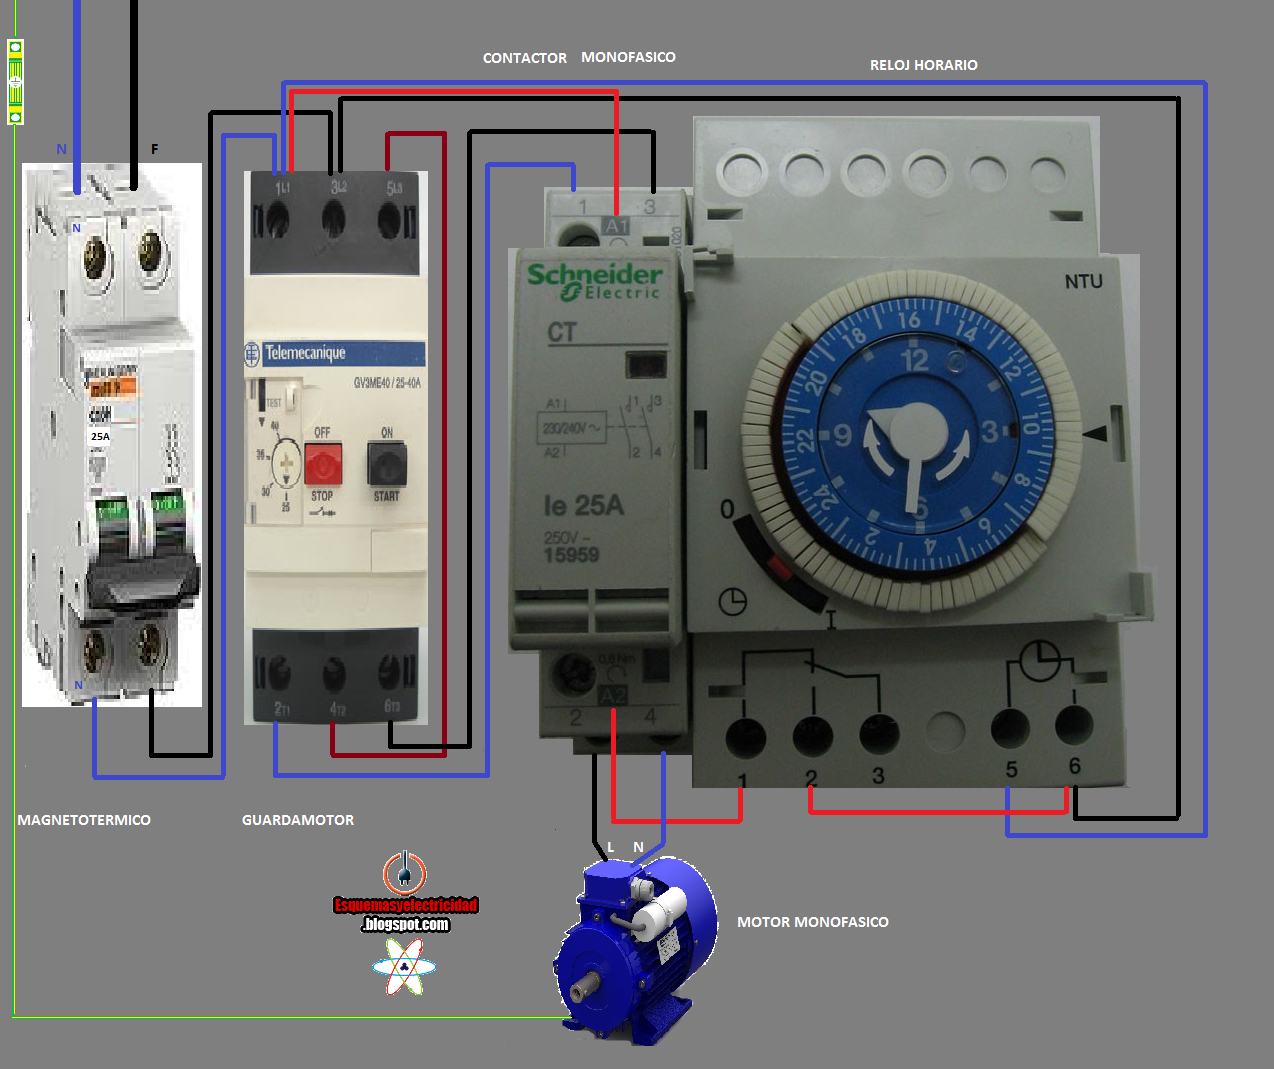 Electrical Diagrams Contactor And Watch Hours Eletrical Engineering Projects Installation